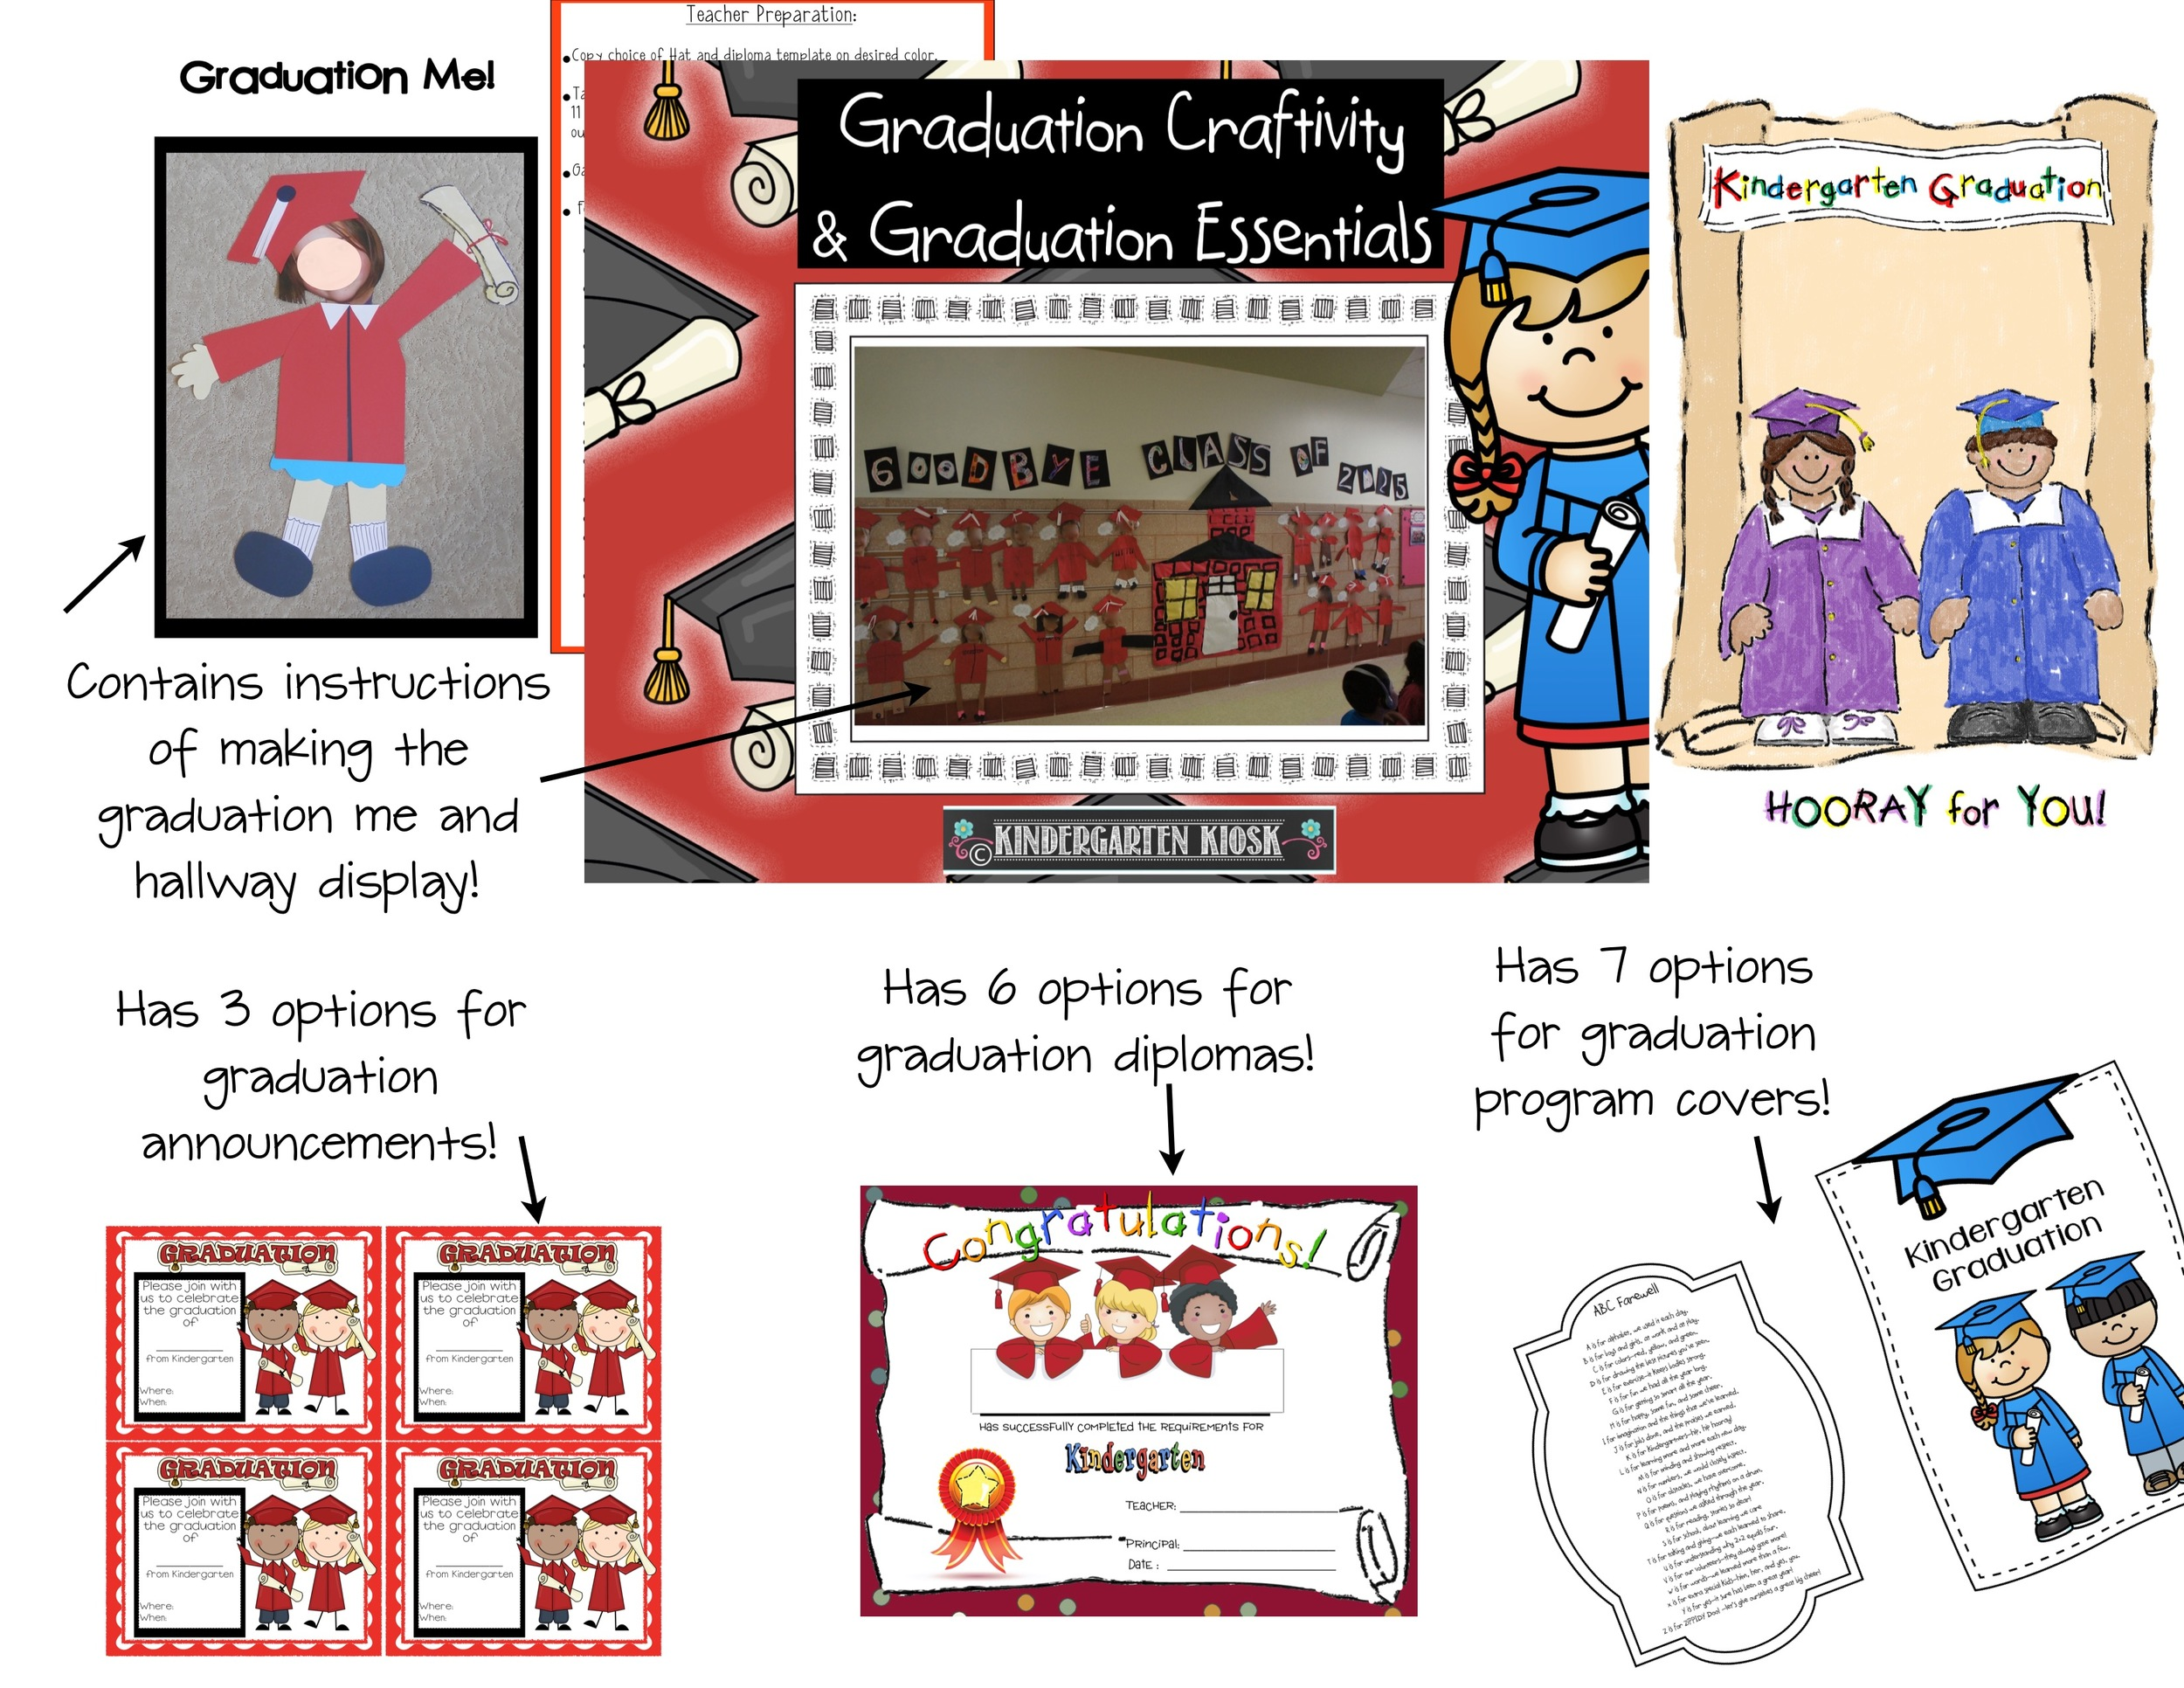 Kindergarten Graduation Craftivity and Other Graduation Essentials - graduation program covers